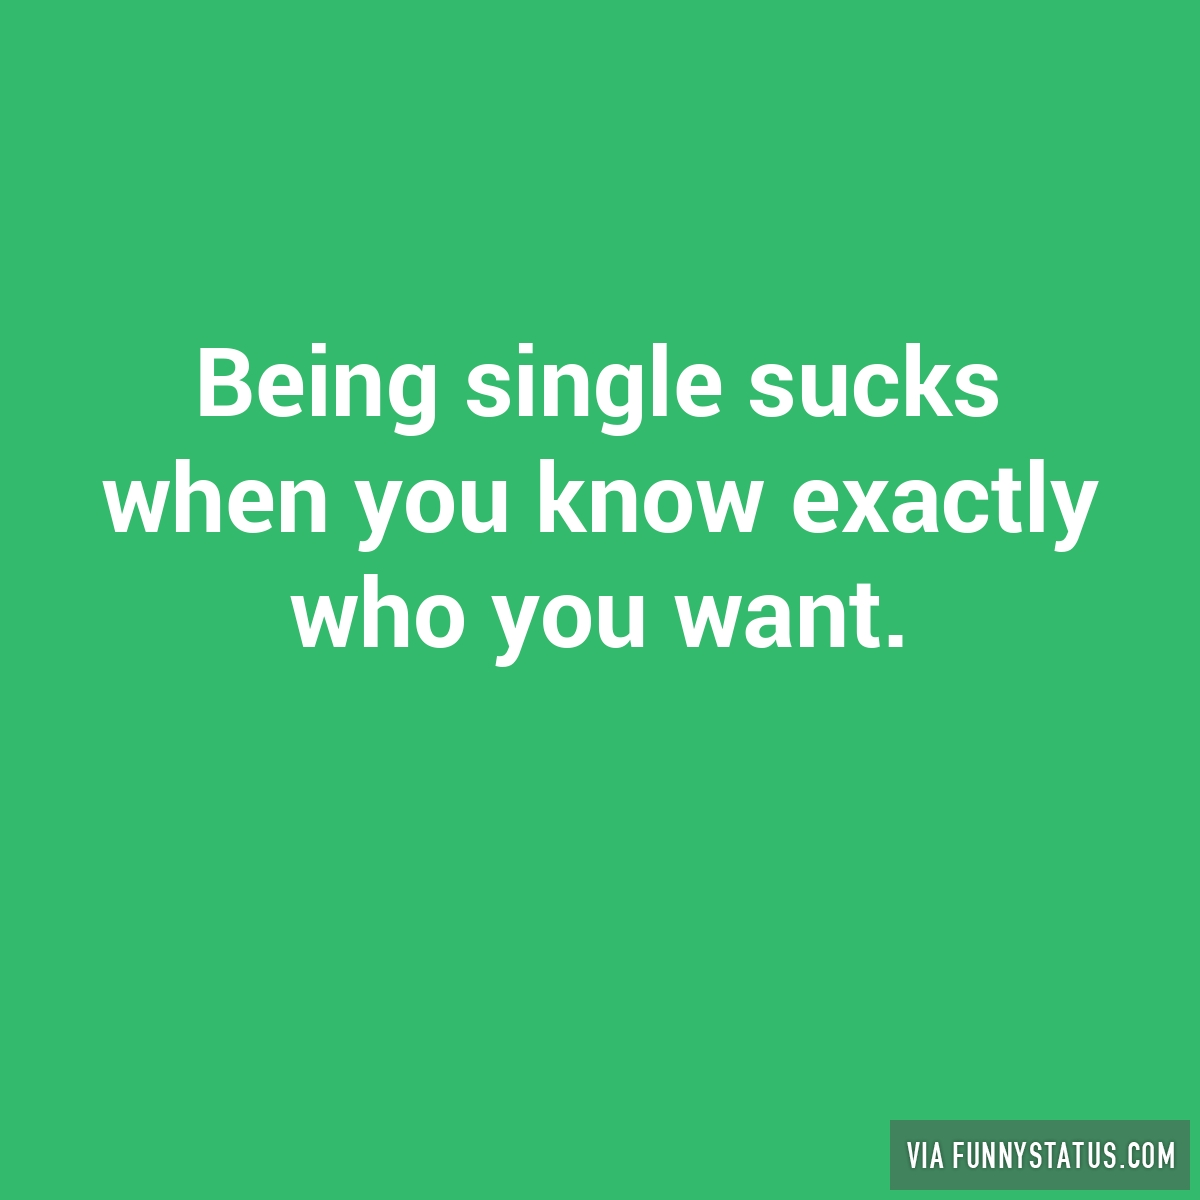 Funny Single Memes Being single sucks when you know exactly who you want